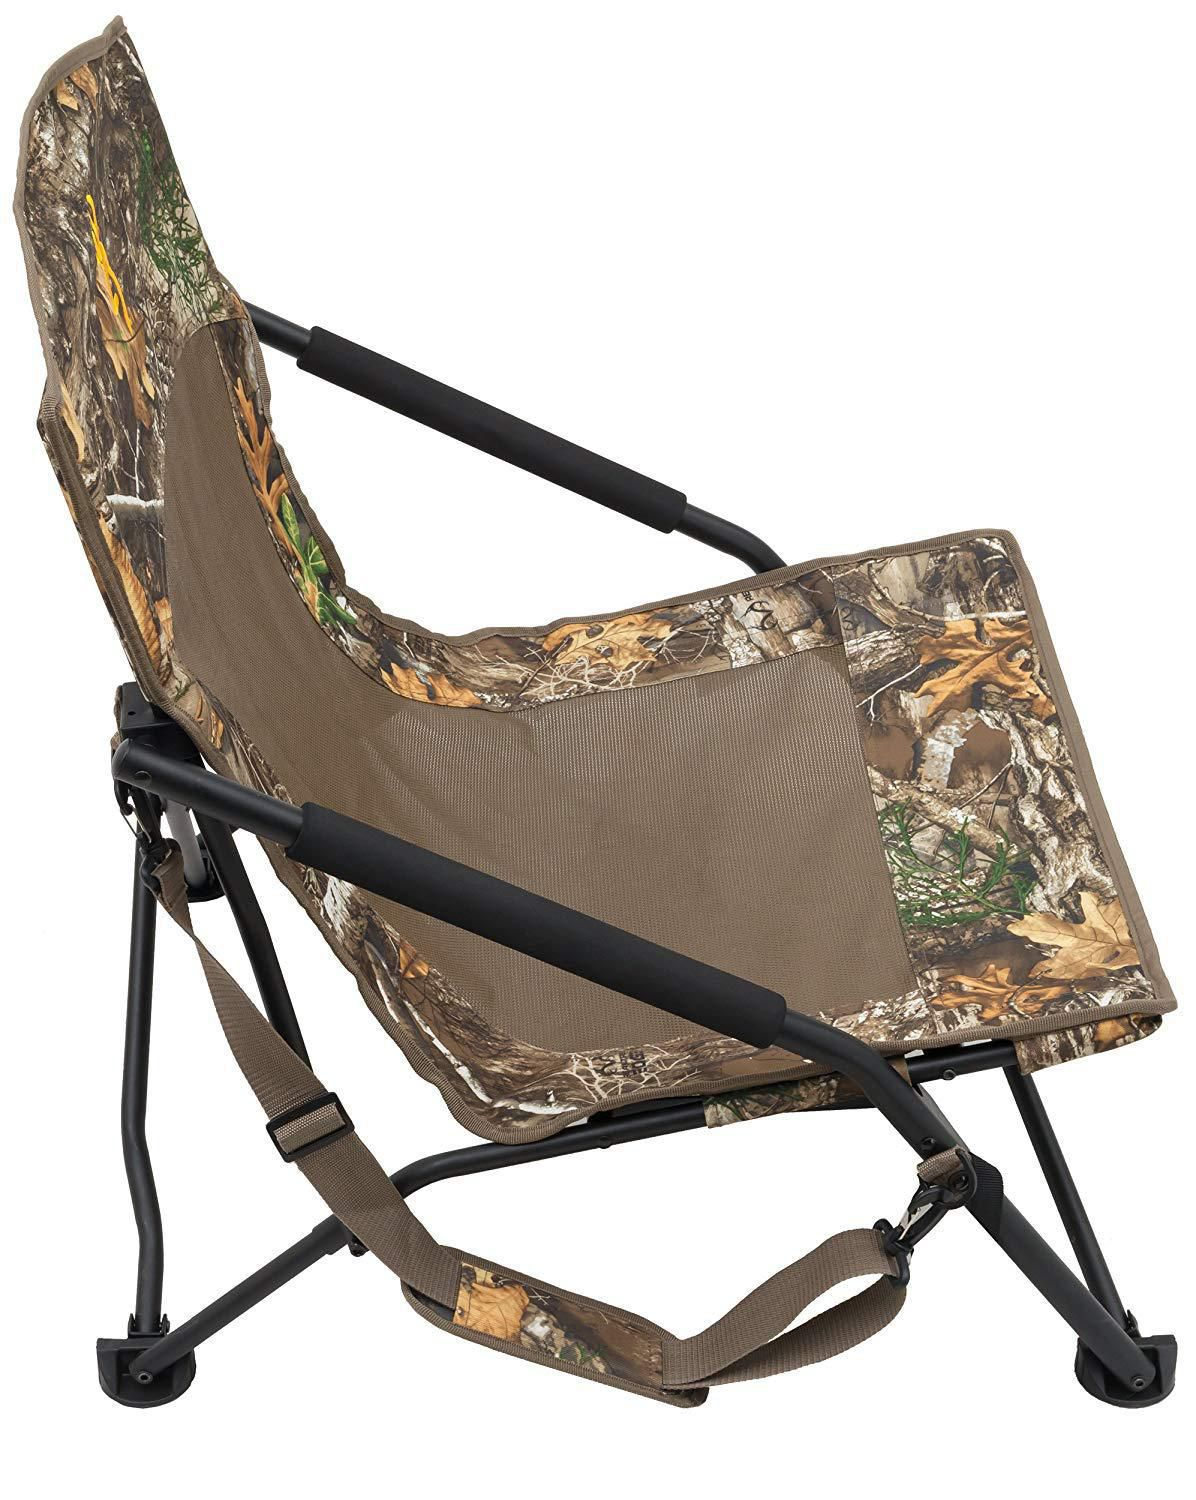 Stupendous Browning Strutter Mc Stool Realtree Edge Inzonedesignstudio Interior Chair Design Inzonedesignstudiocom